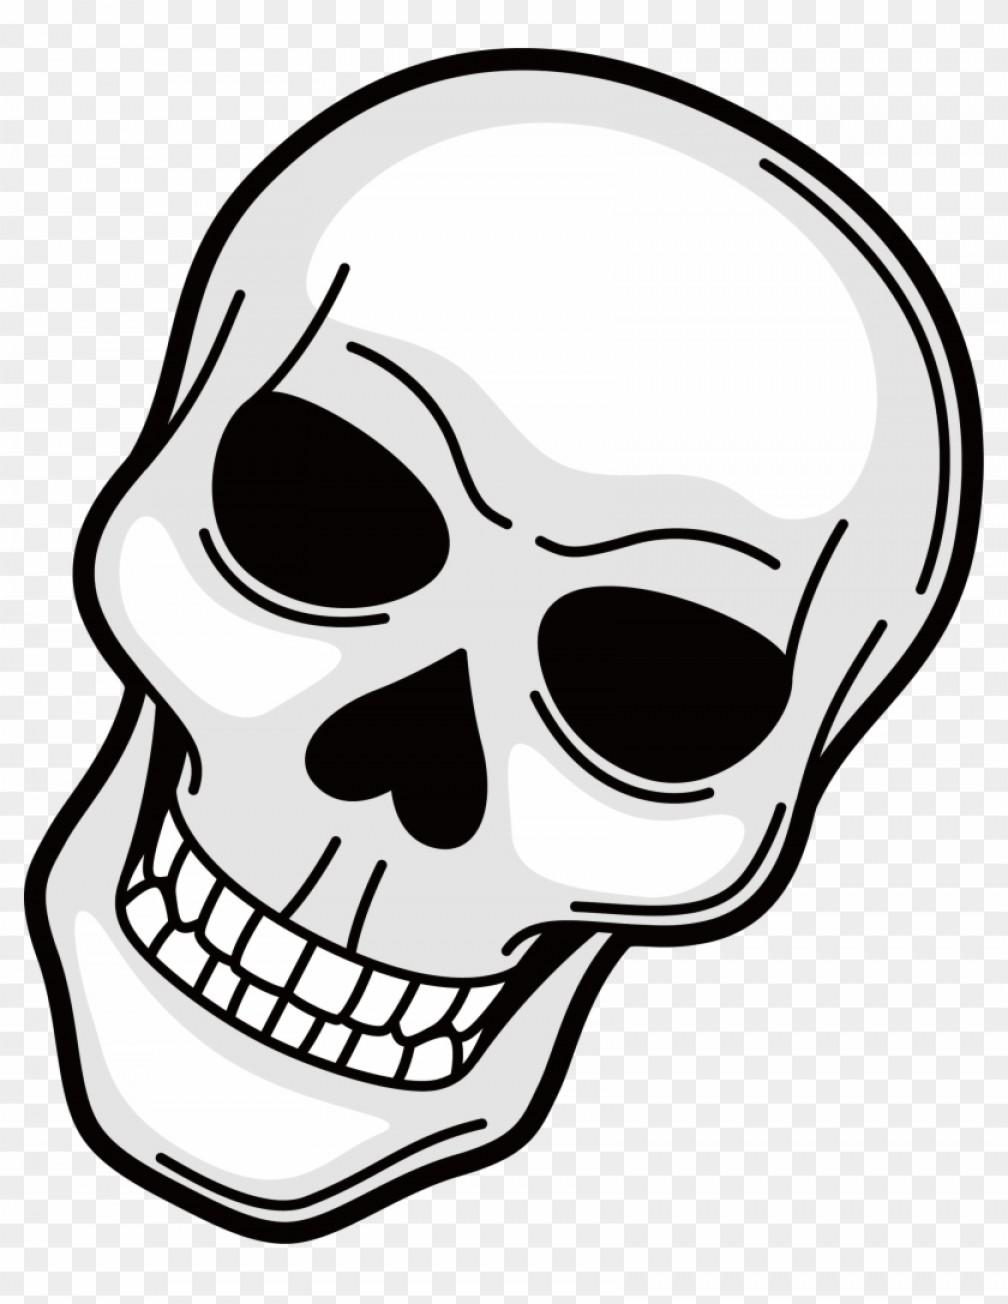 Best Free Skull Clip Art Design » Free Vector Art, Images.